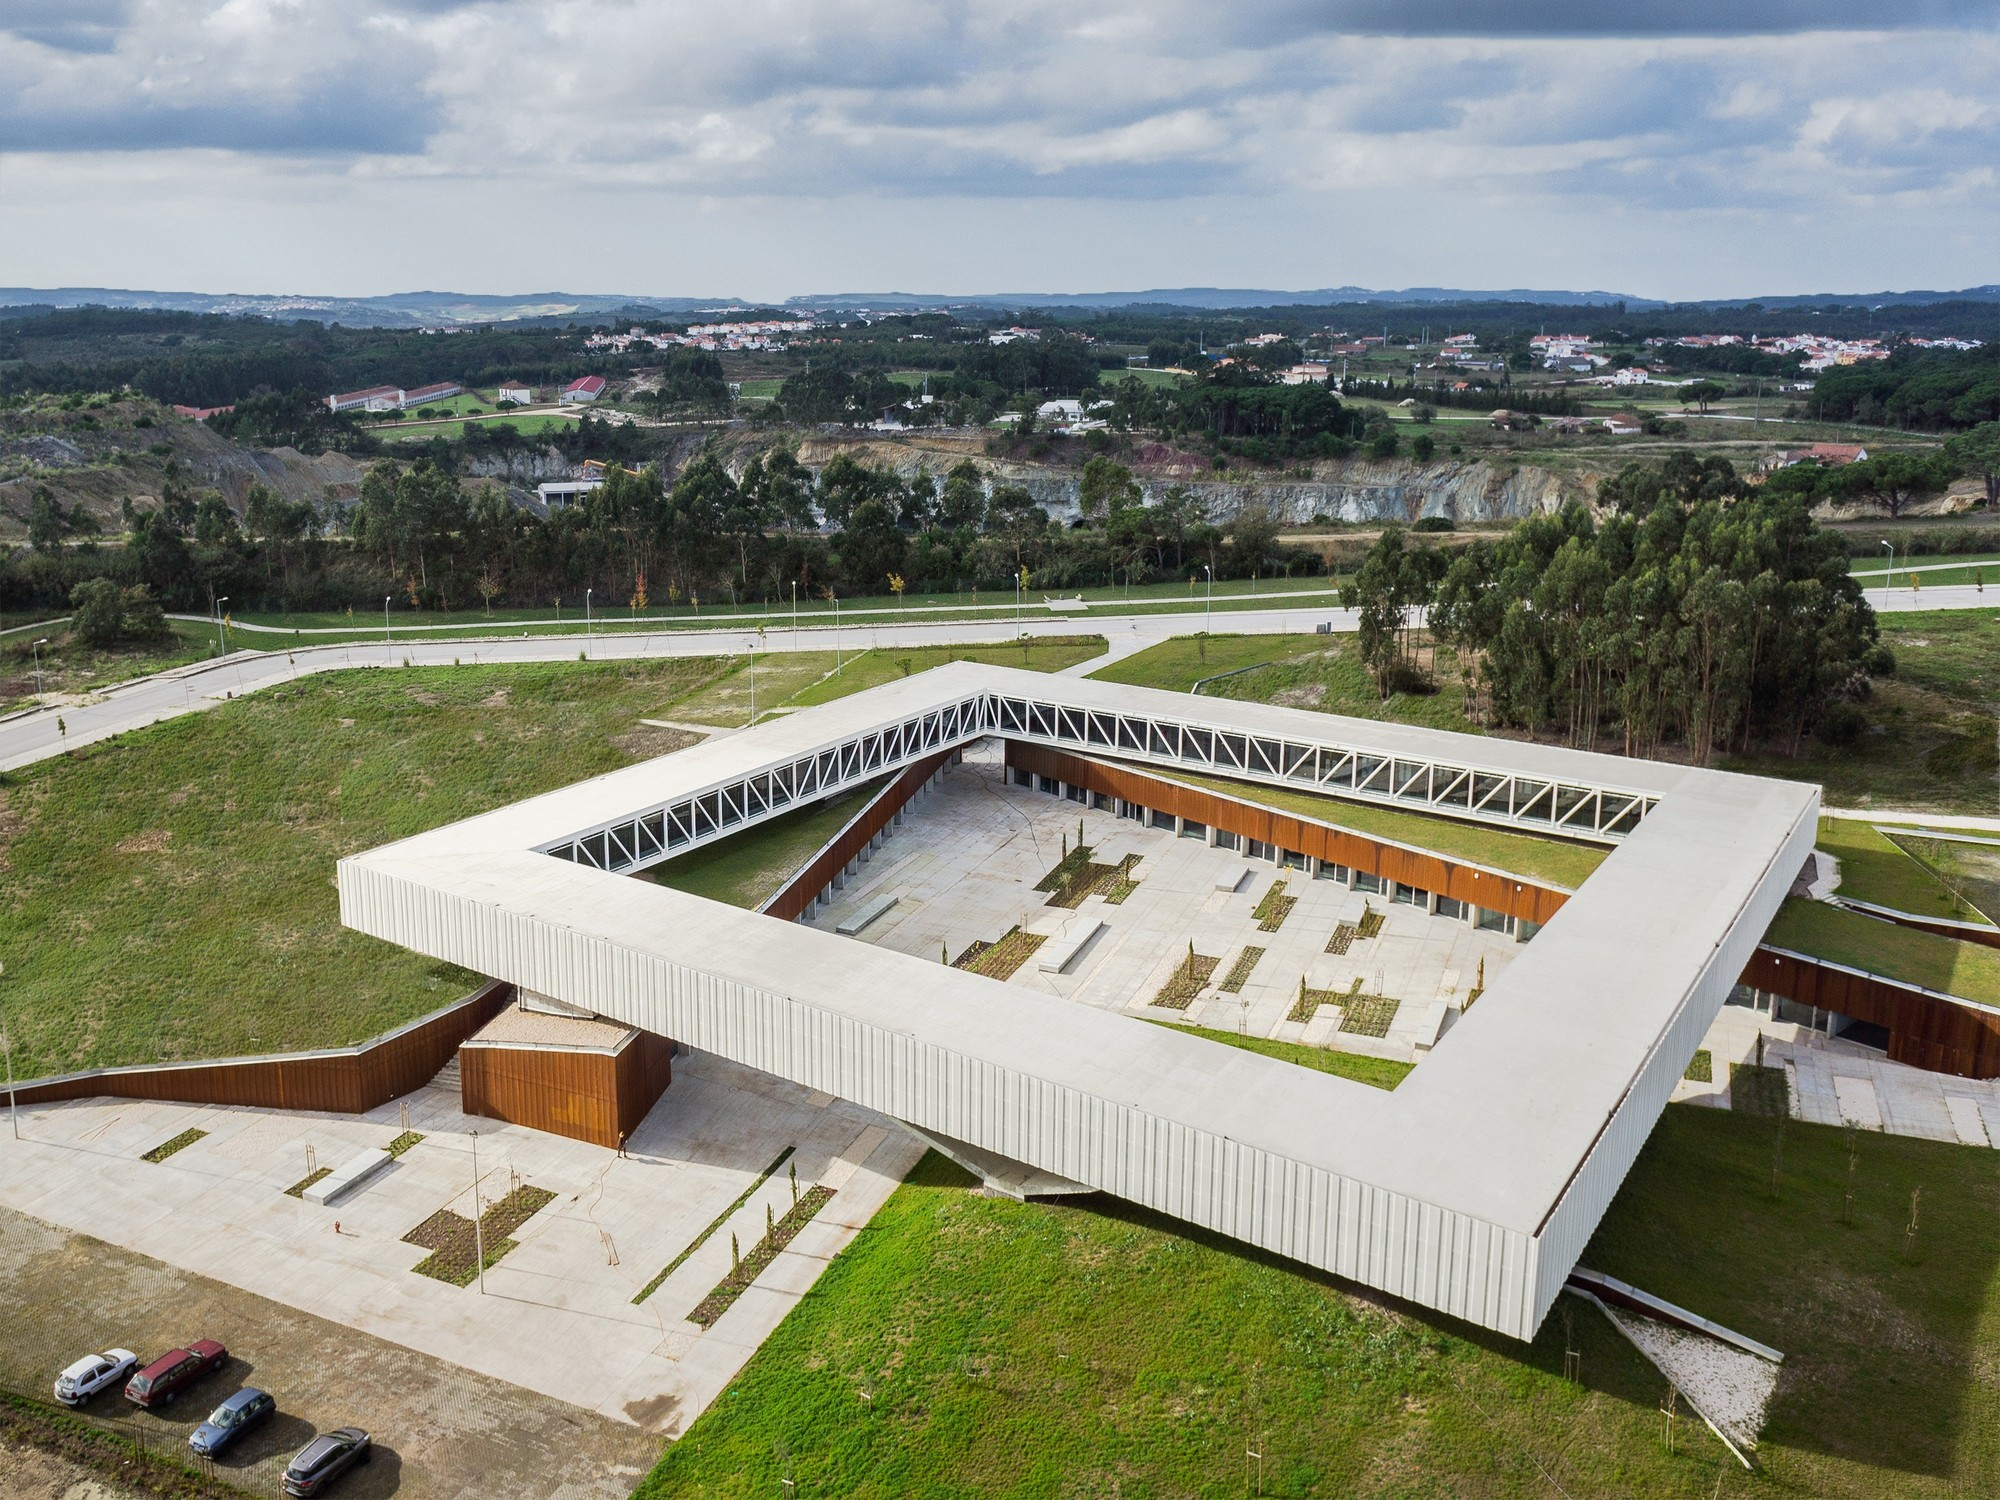 Technological park in obidos jorge mealha archdaily for Architecture 54